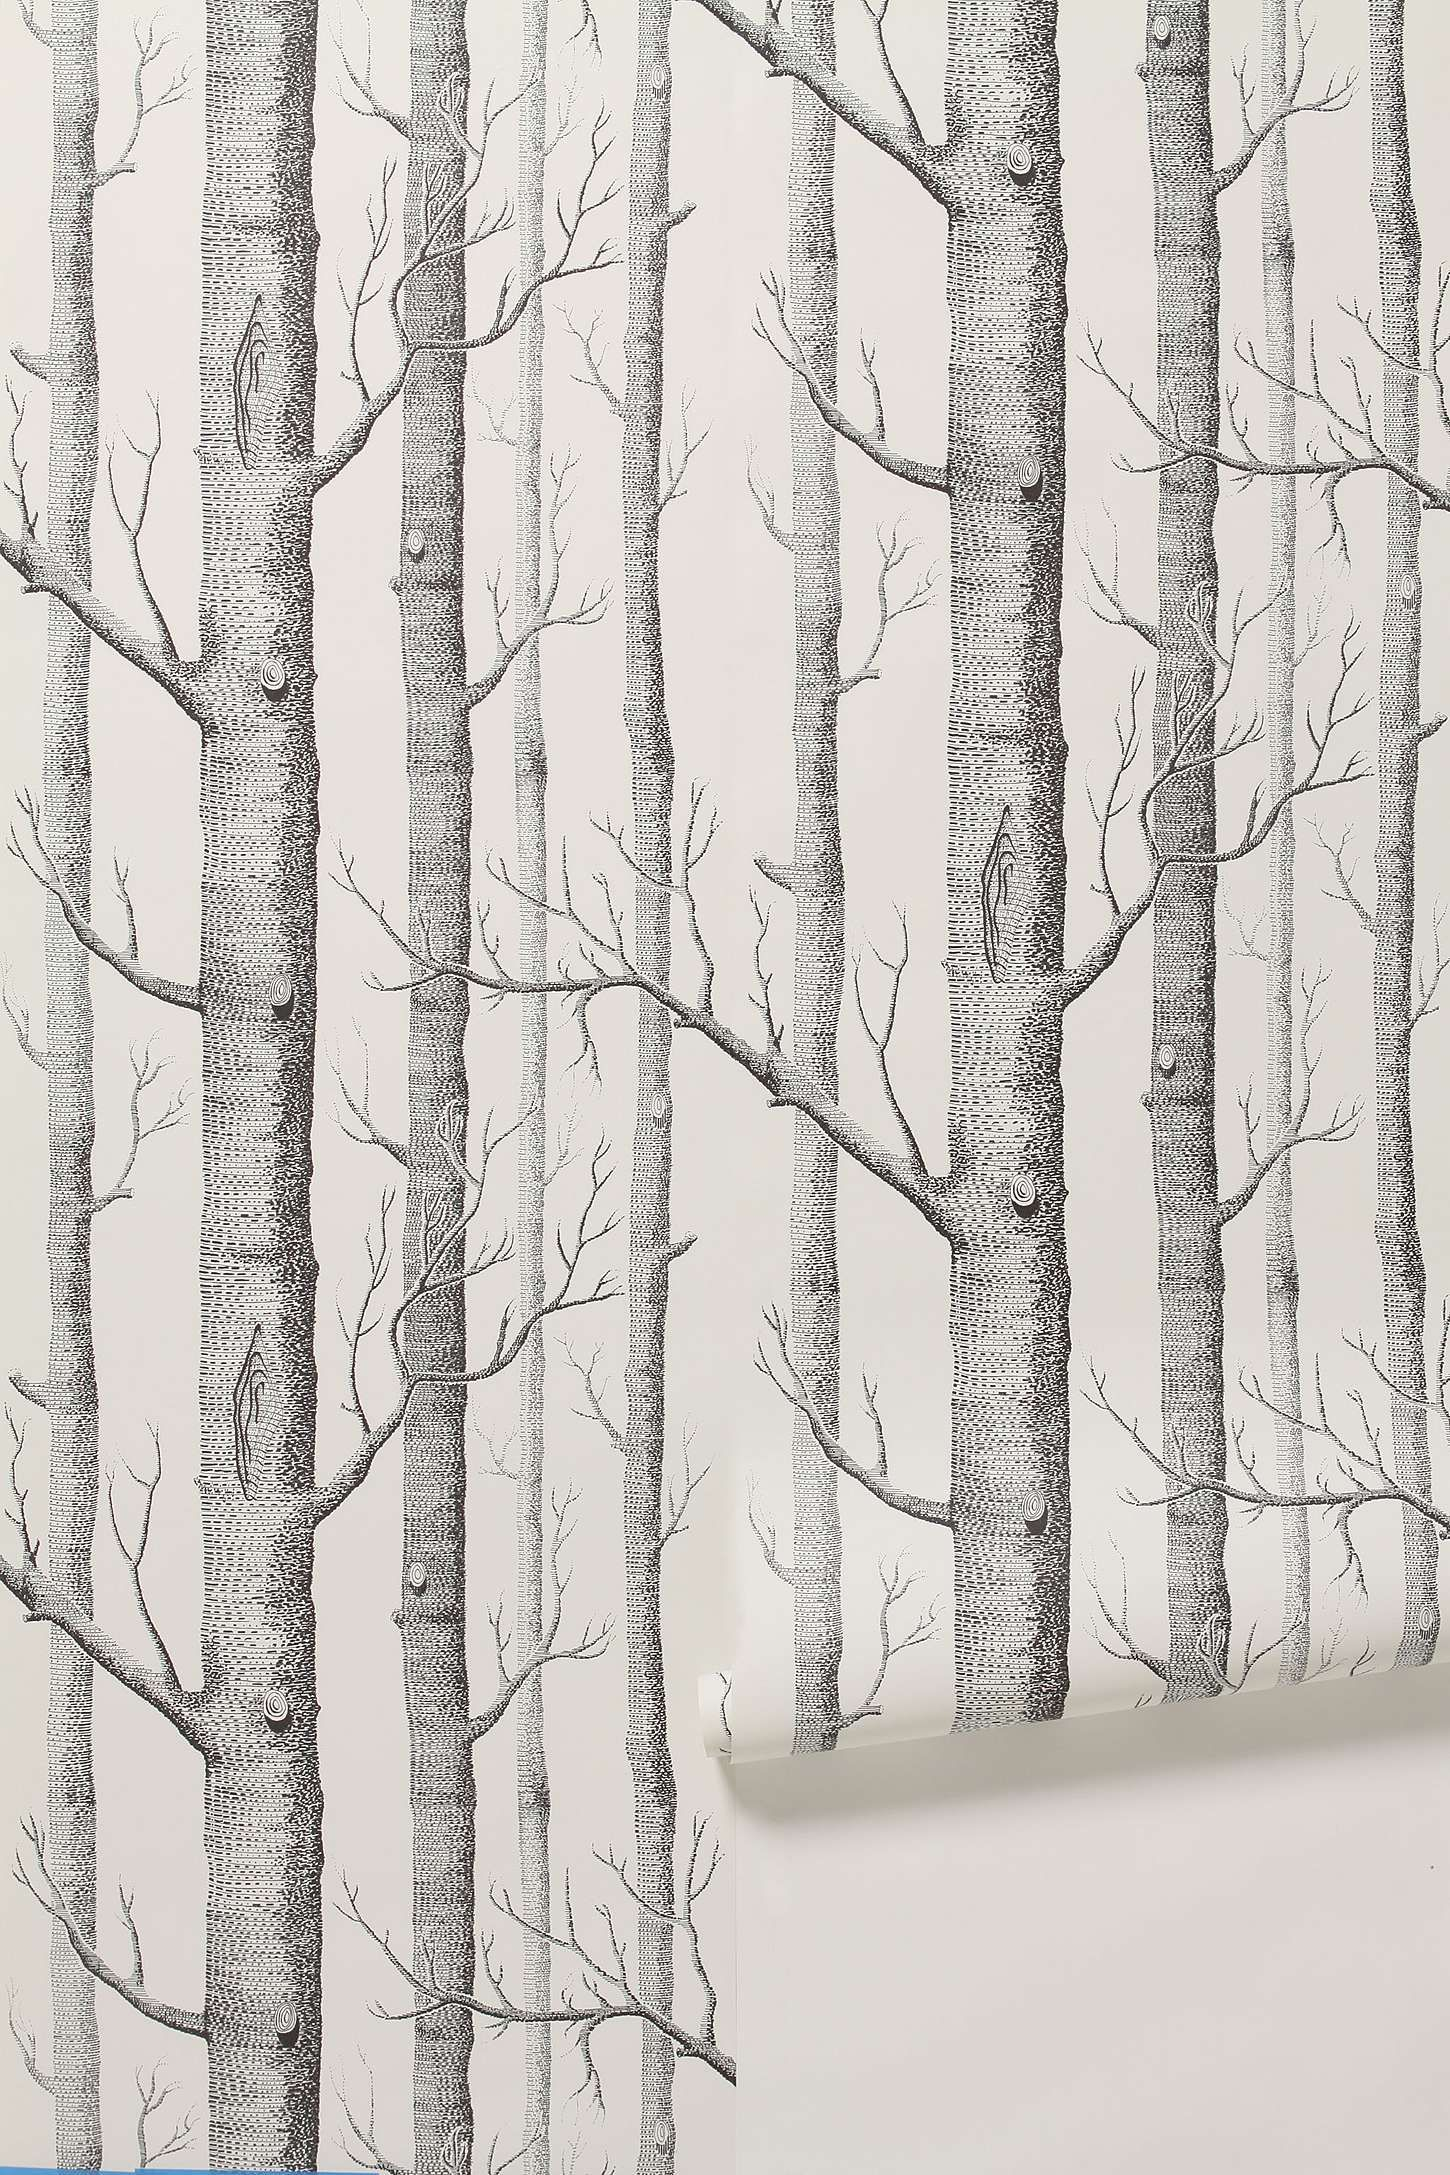 Birch Tree Wallpaper  I Think This Might Be Neat